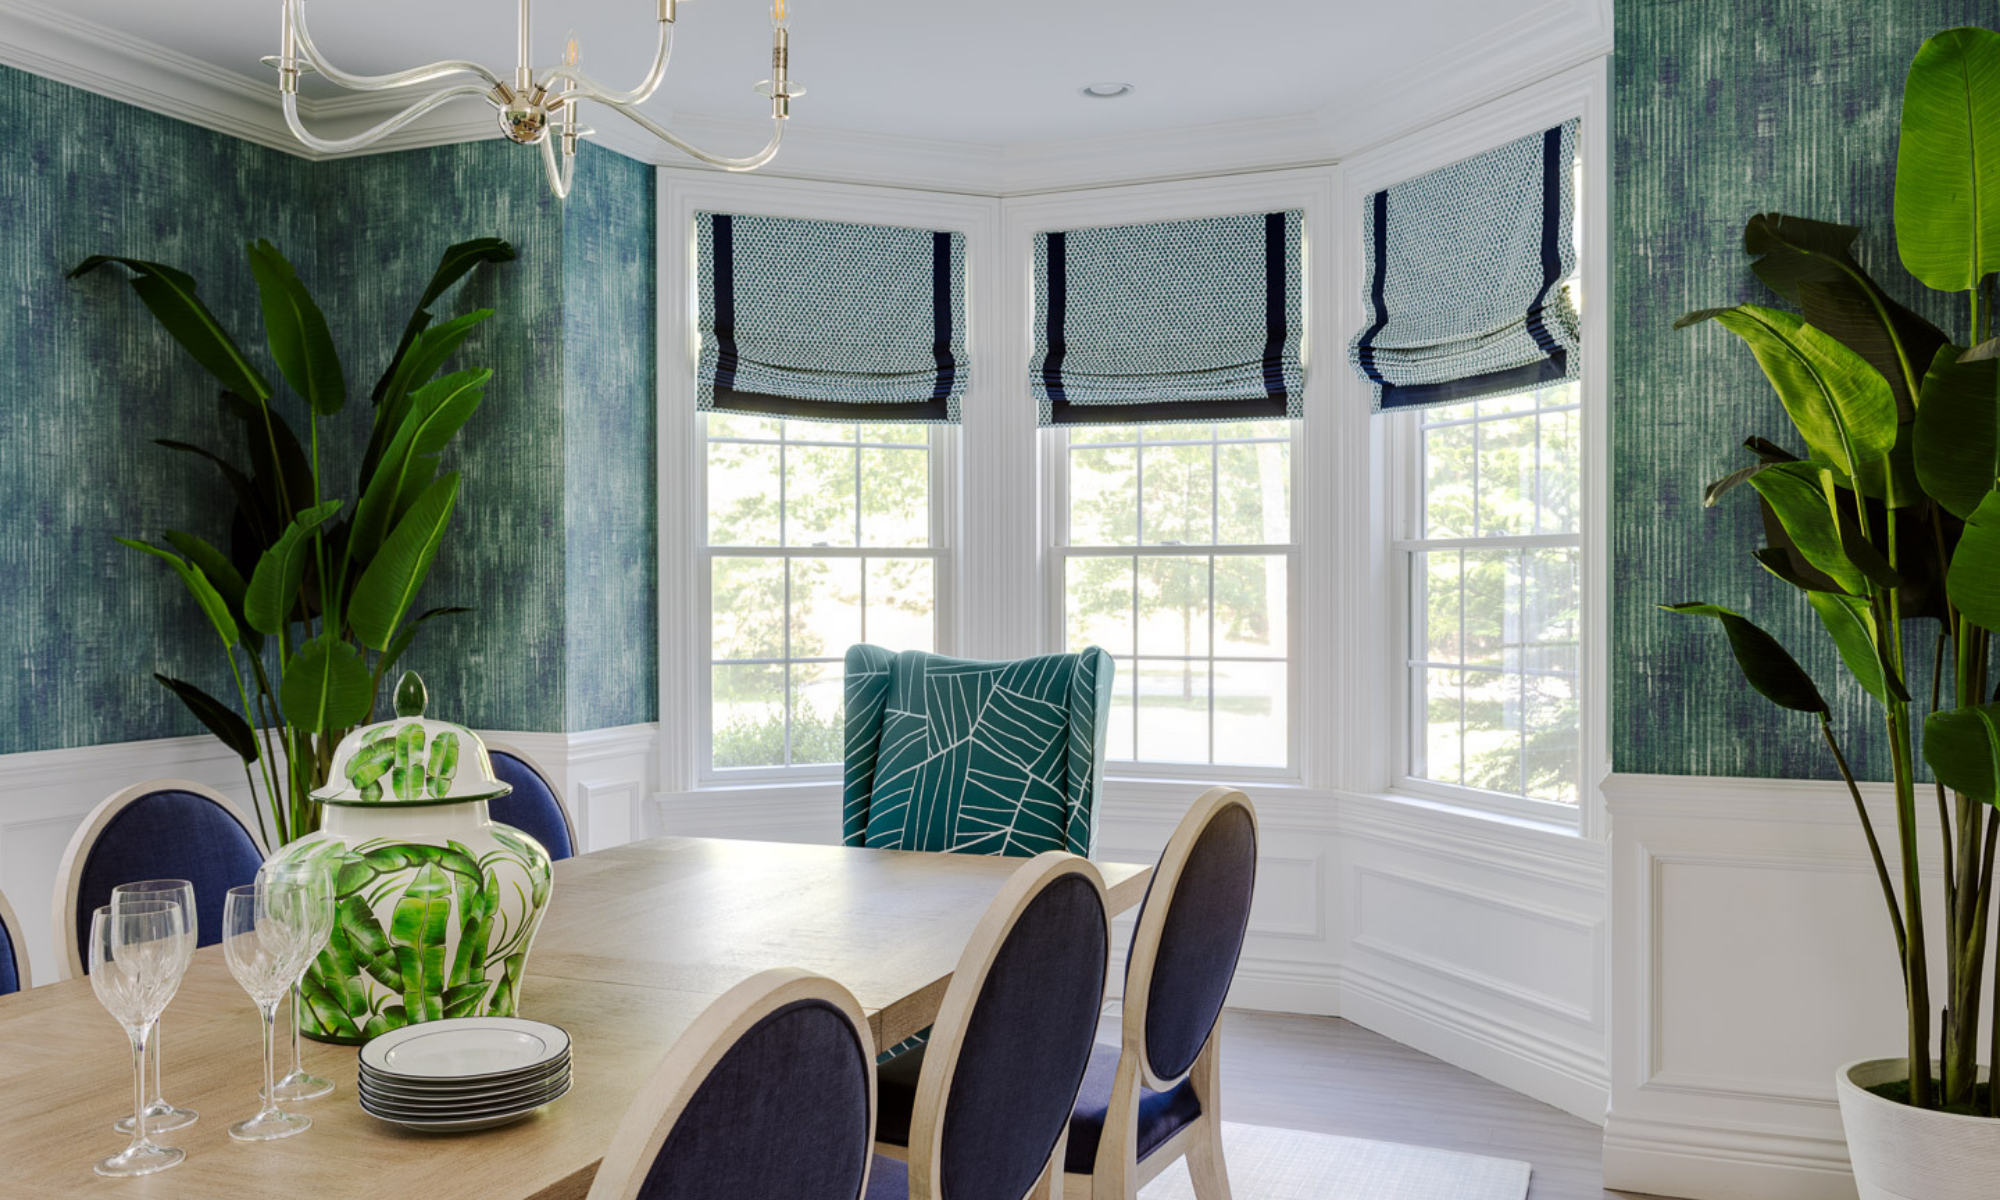 blakely interior design newport new england traditional design in east greenwich featured image